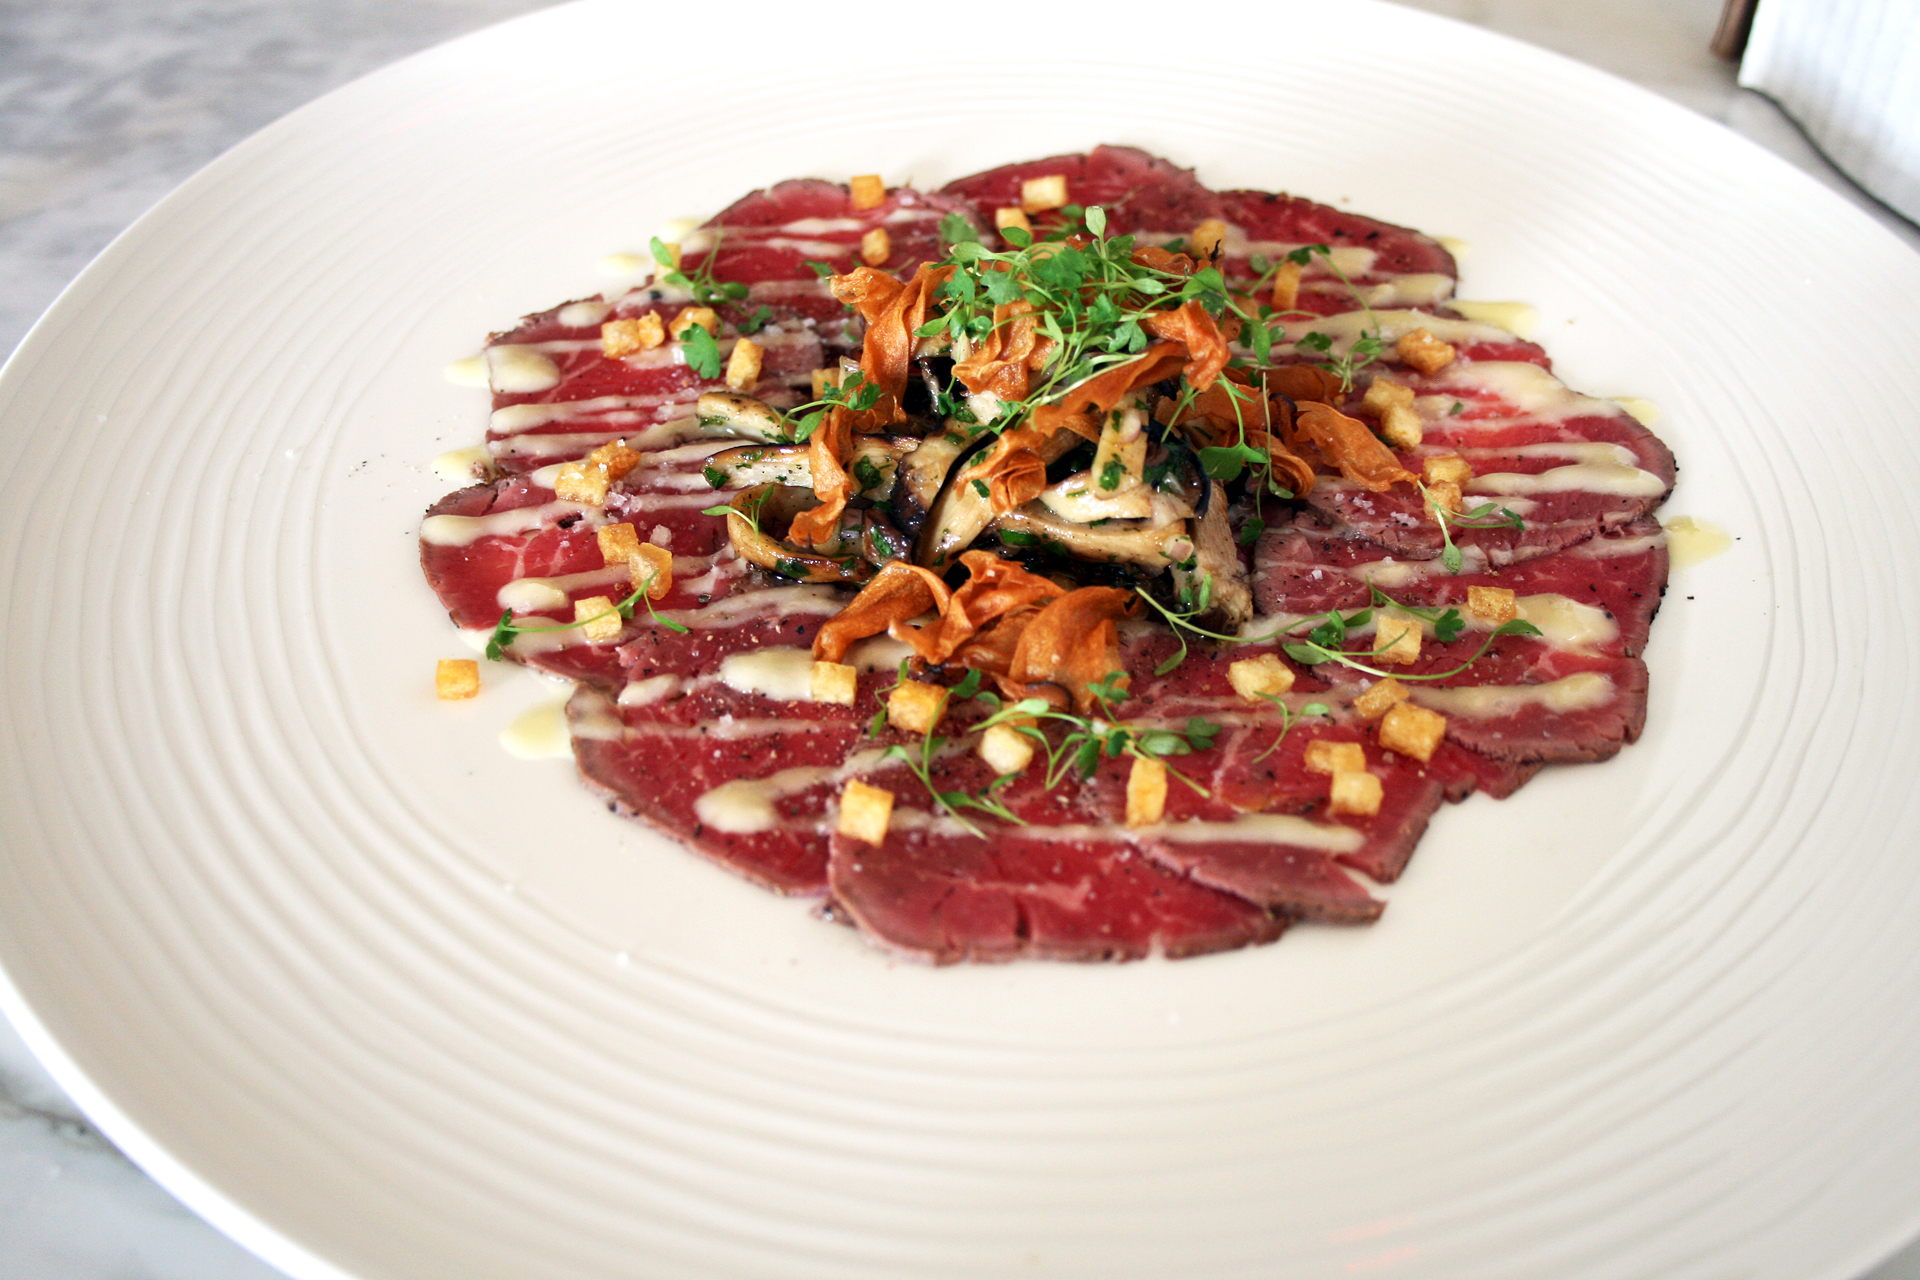 Beef Carpaccio — meltingly fatty, perfectly sliced and topped with sauteed trumpet mushrooms.